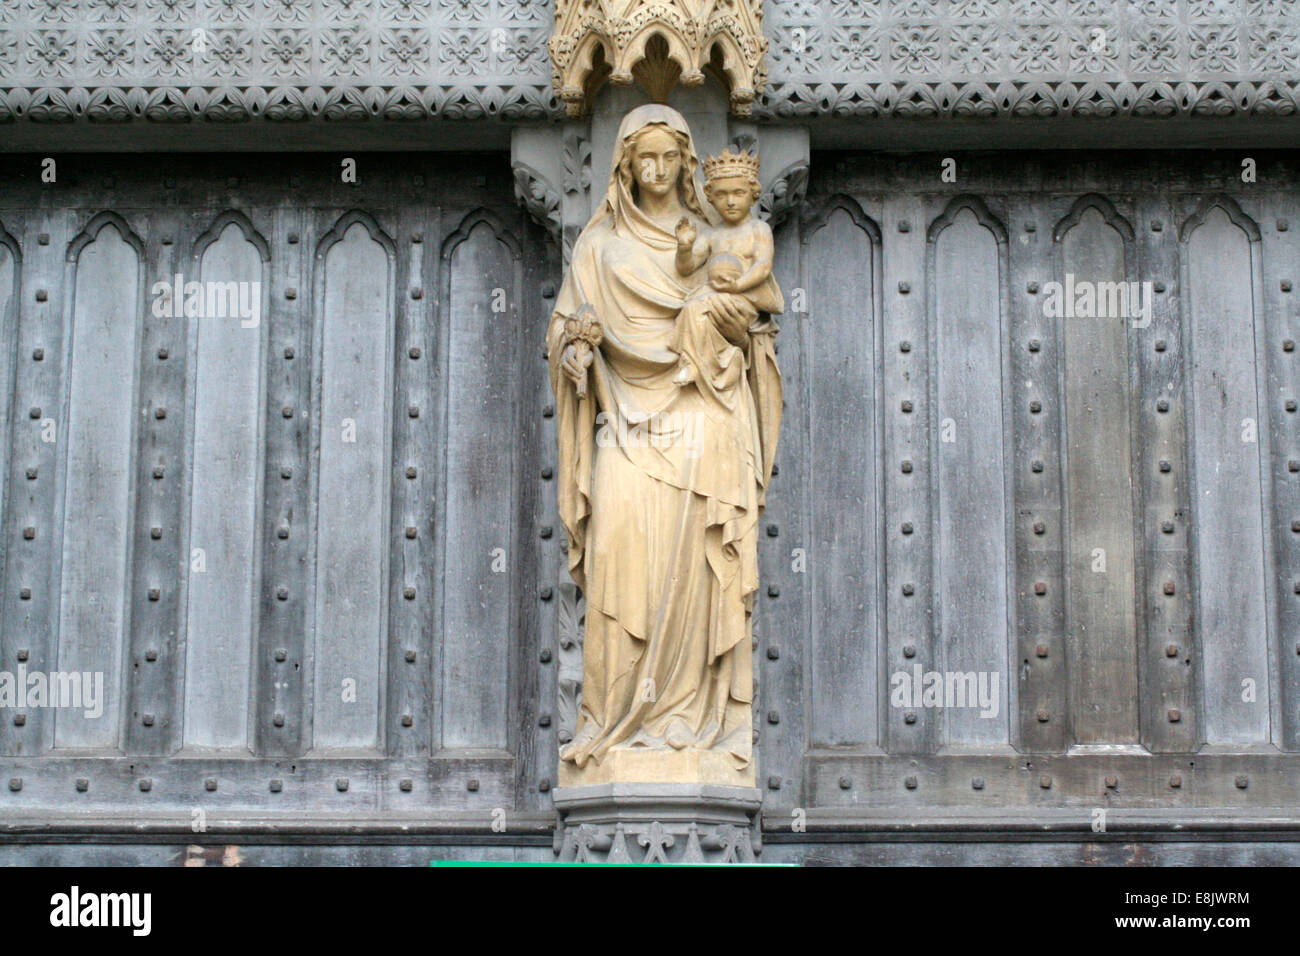 Westminster abbey faade sculpture - Stock Image